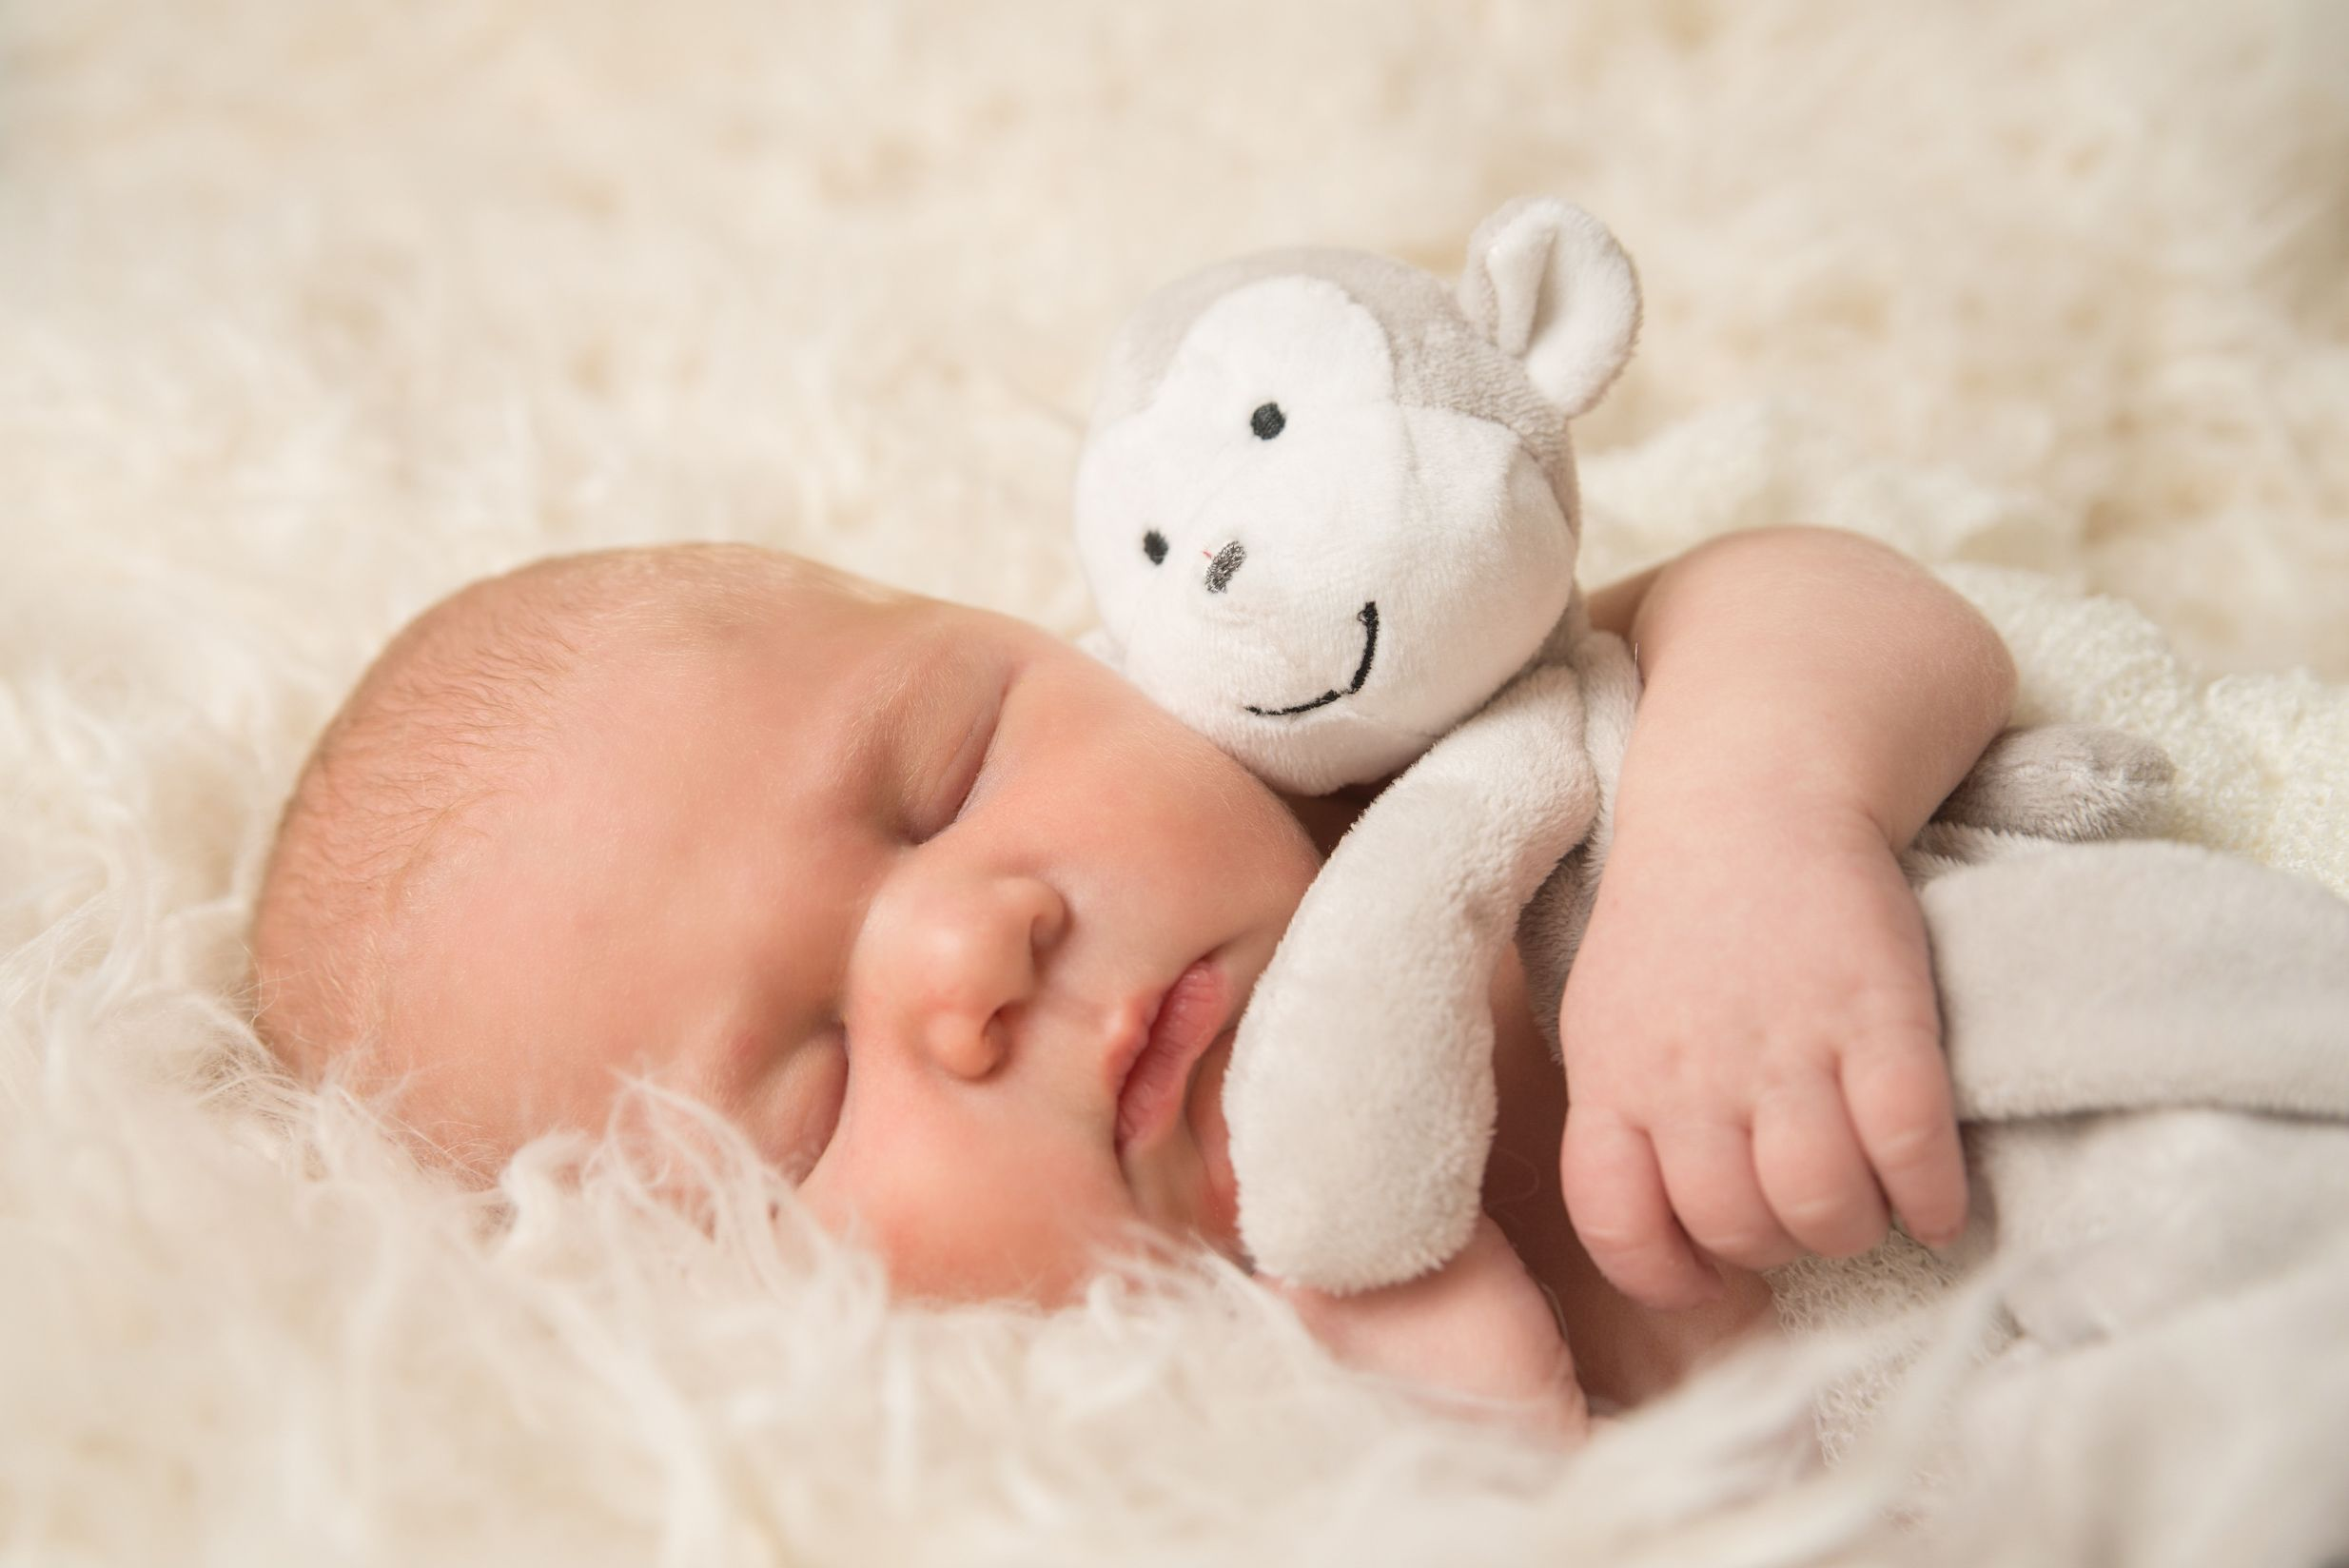 newborn baby sleeping cuddling a monkey soft toy